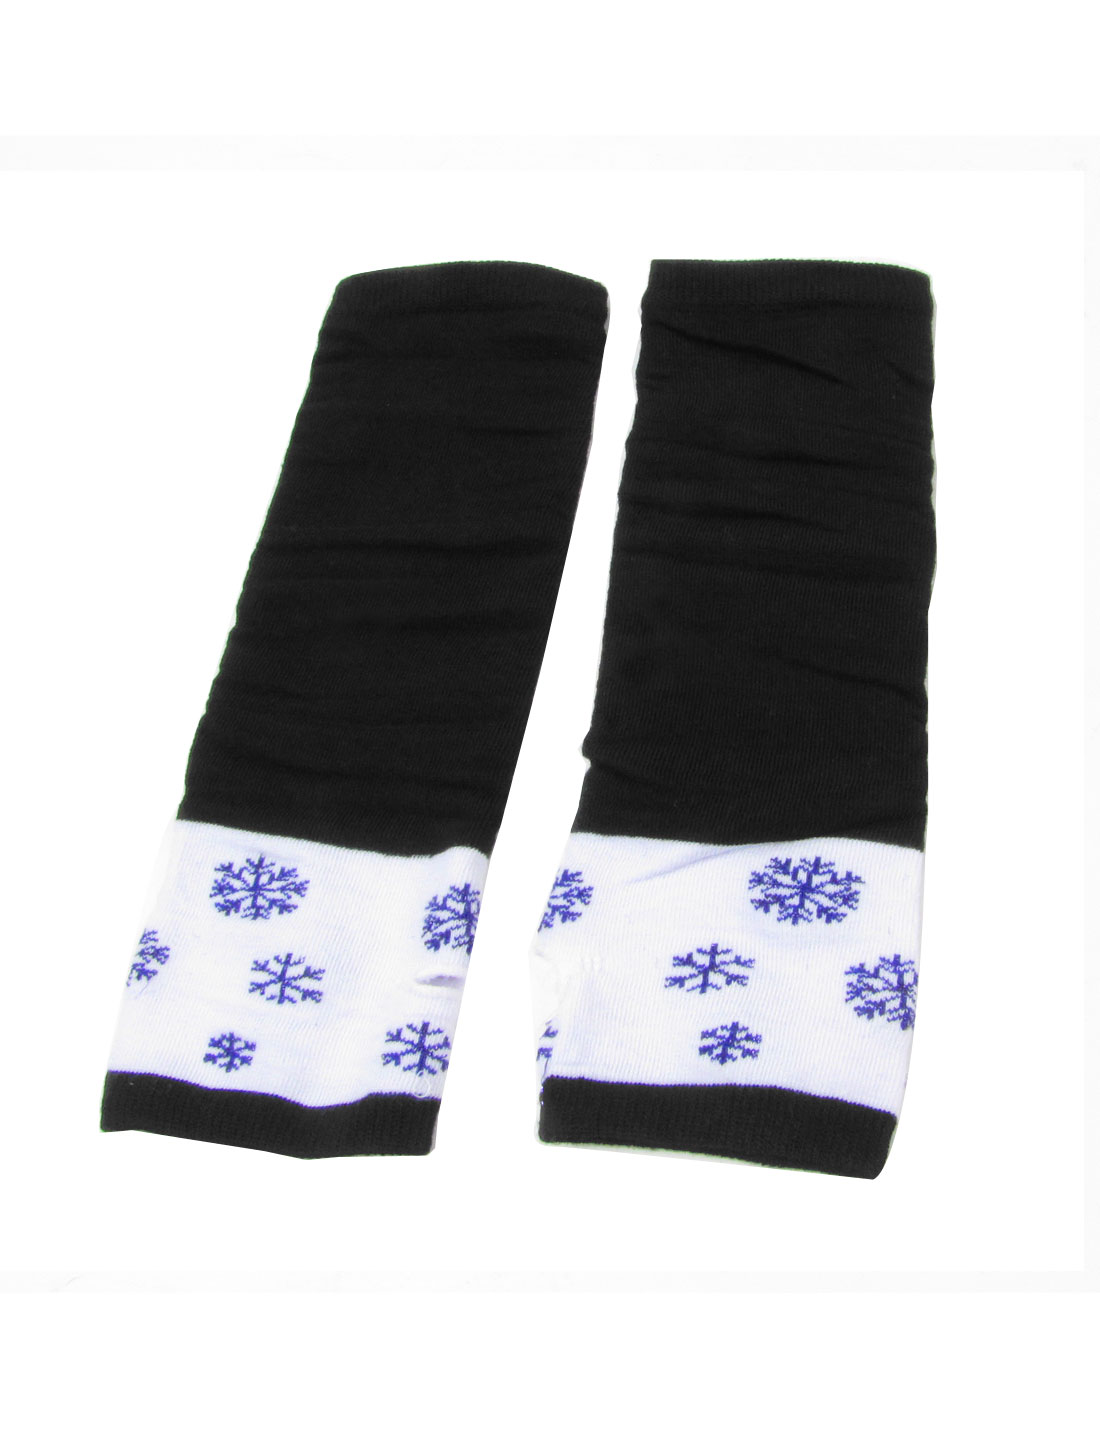 Pair Snowflake Print Elastic Wrist Arm Warmer Gloves Black White for Ladies